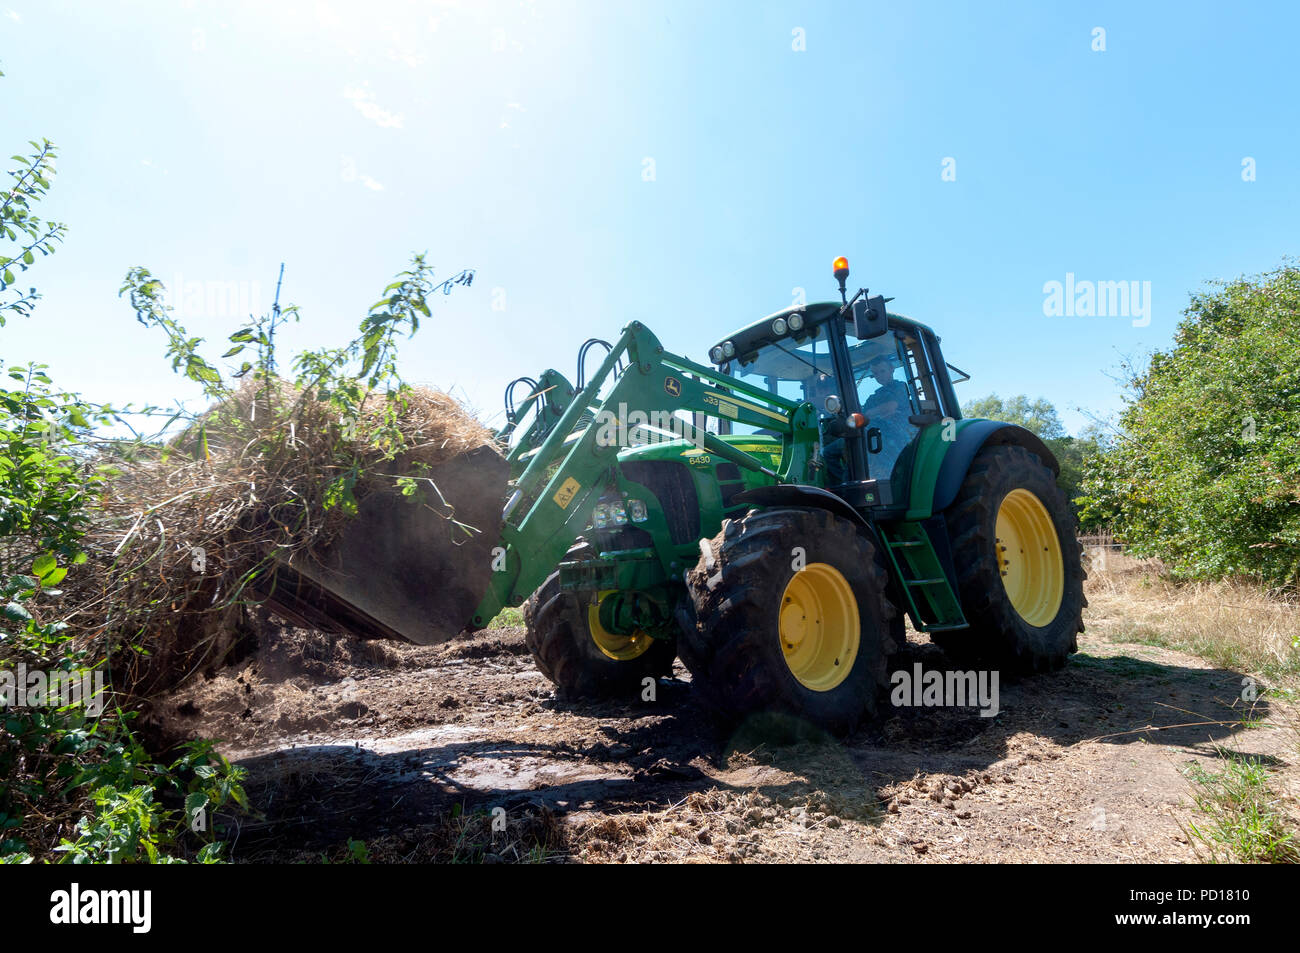 John Deere 6430 Tractor Fitted with JD 633 loader. - Stock Image